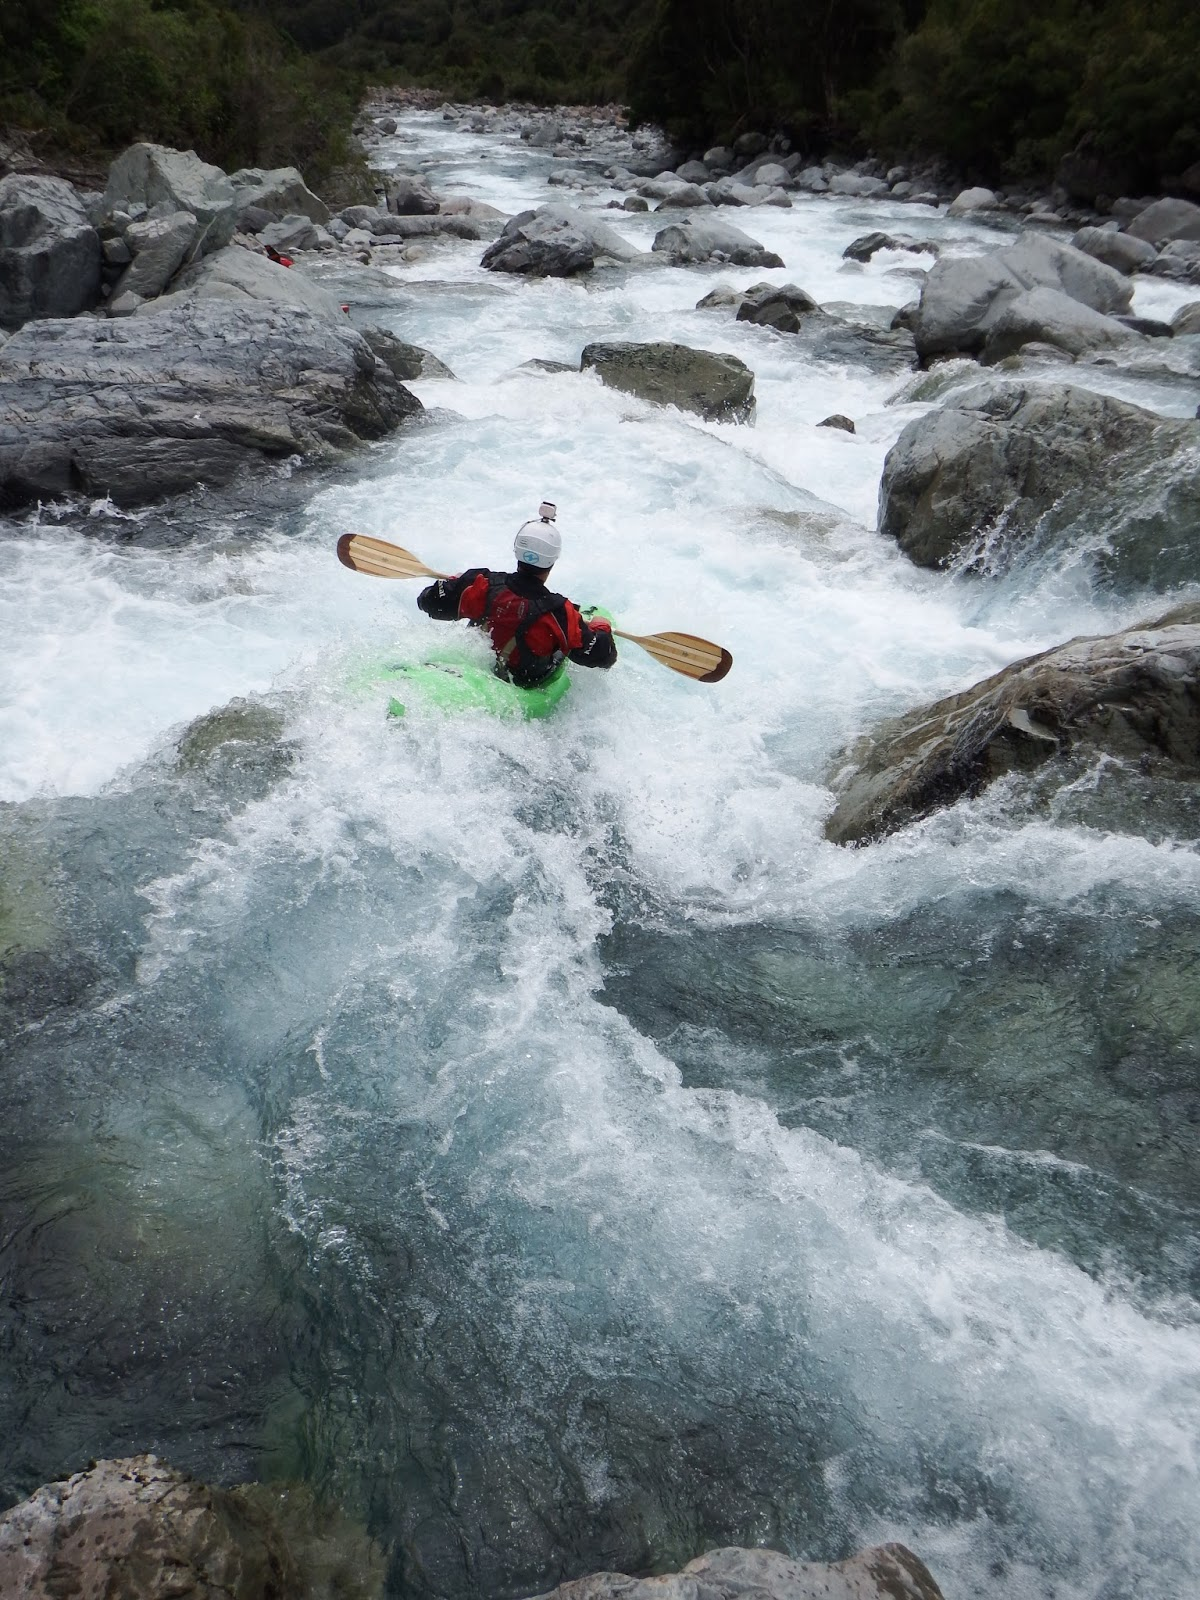 Chris Baer, making his way down stream on the Taipo, New Zealand, kayaking